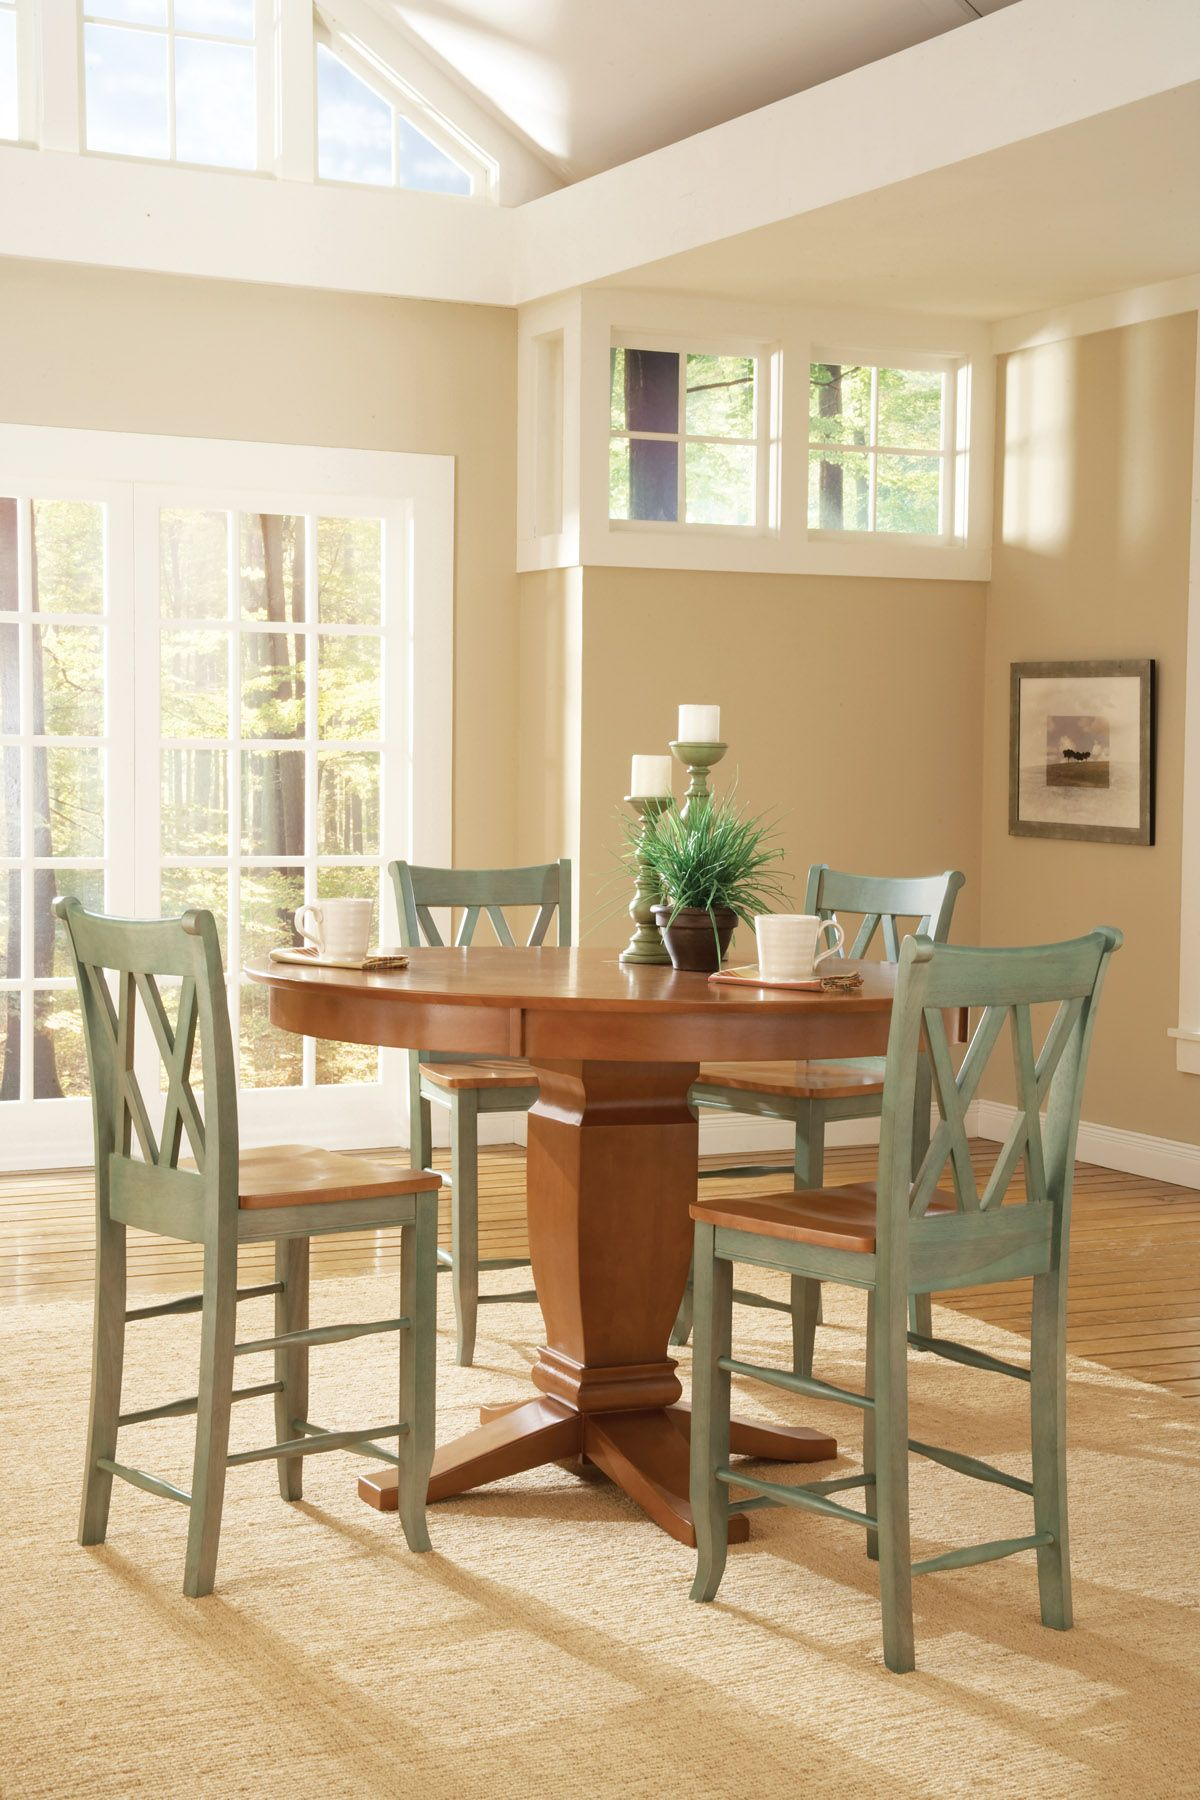 A Great Bridge Furniture Look 1325 South Battlefield Blvd In Chesapeake 482 6622 Furniture Dining Table Table Dining